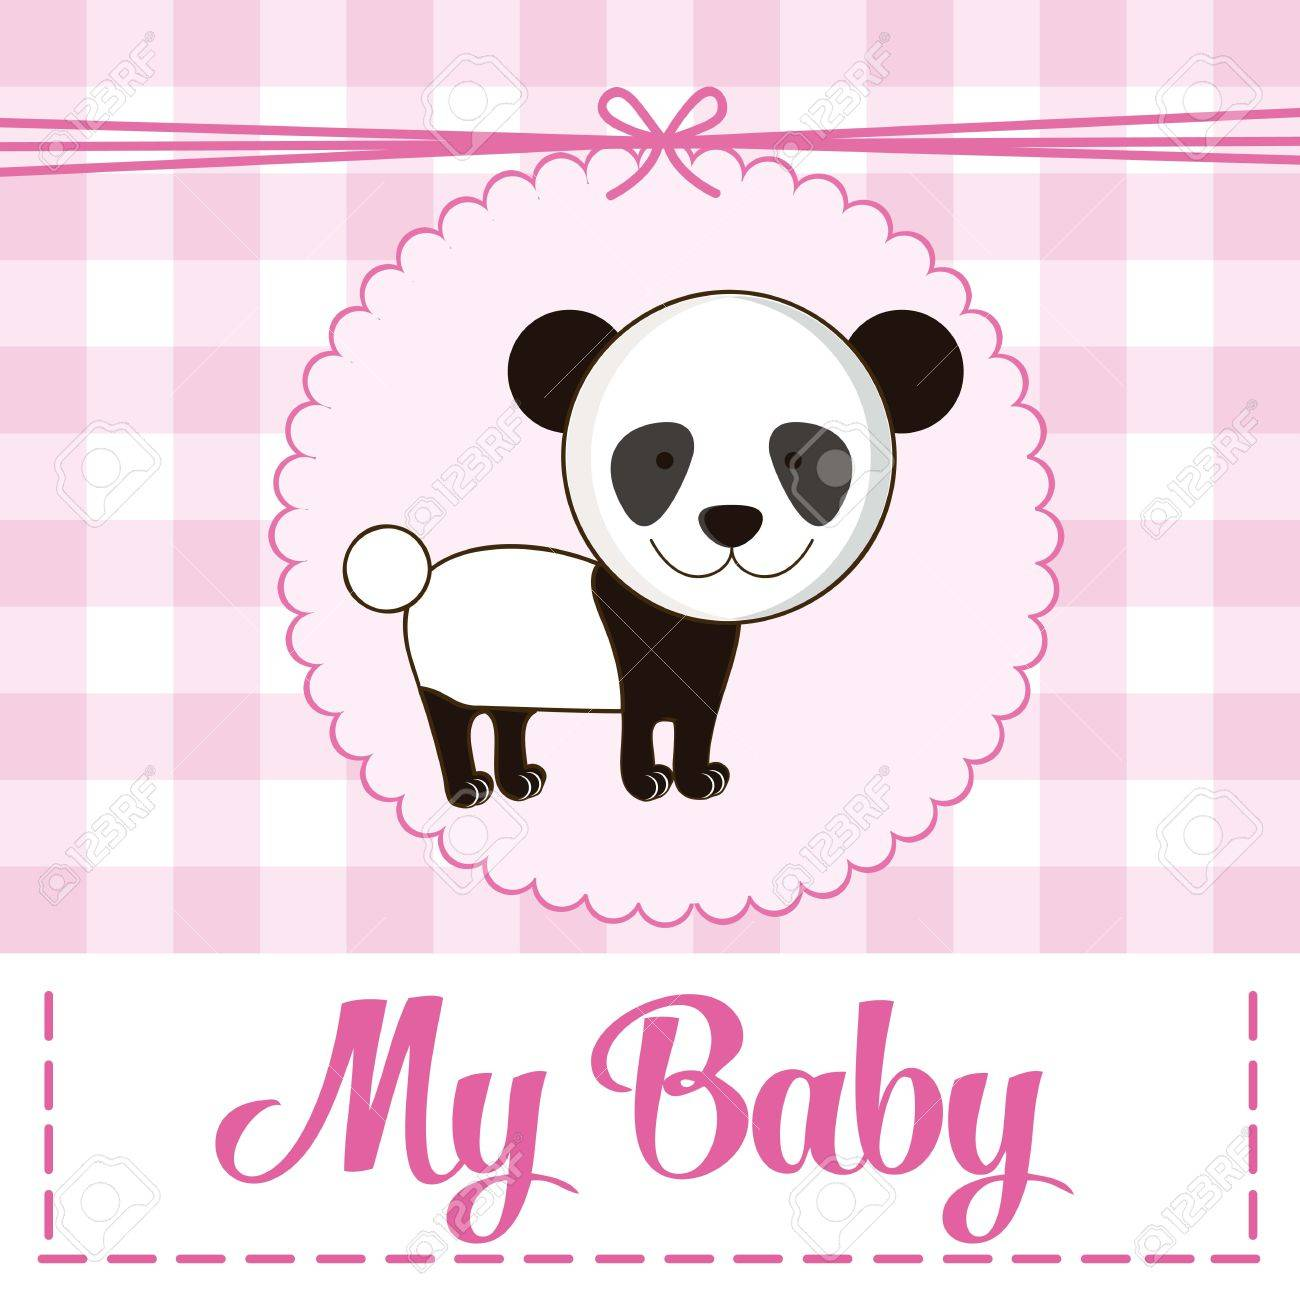 Illustration Of Baby Shower Invitation With A Cute Panda. Vector ...